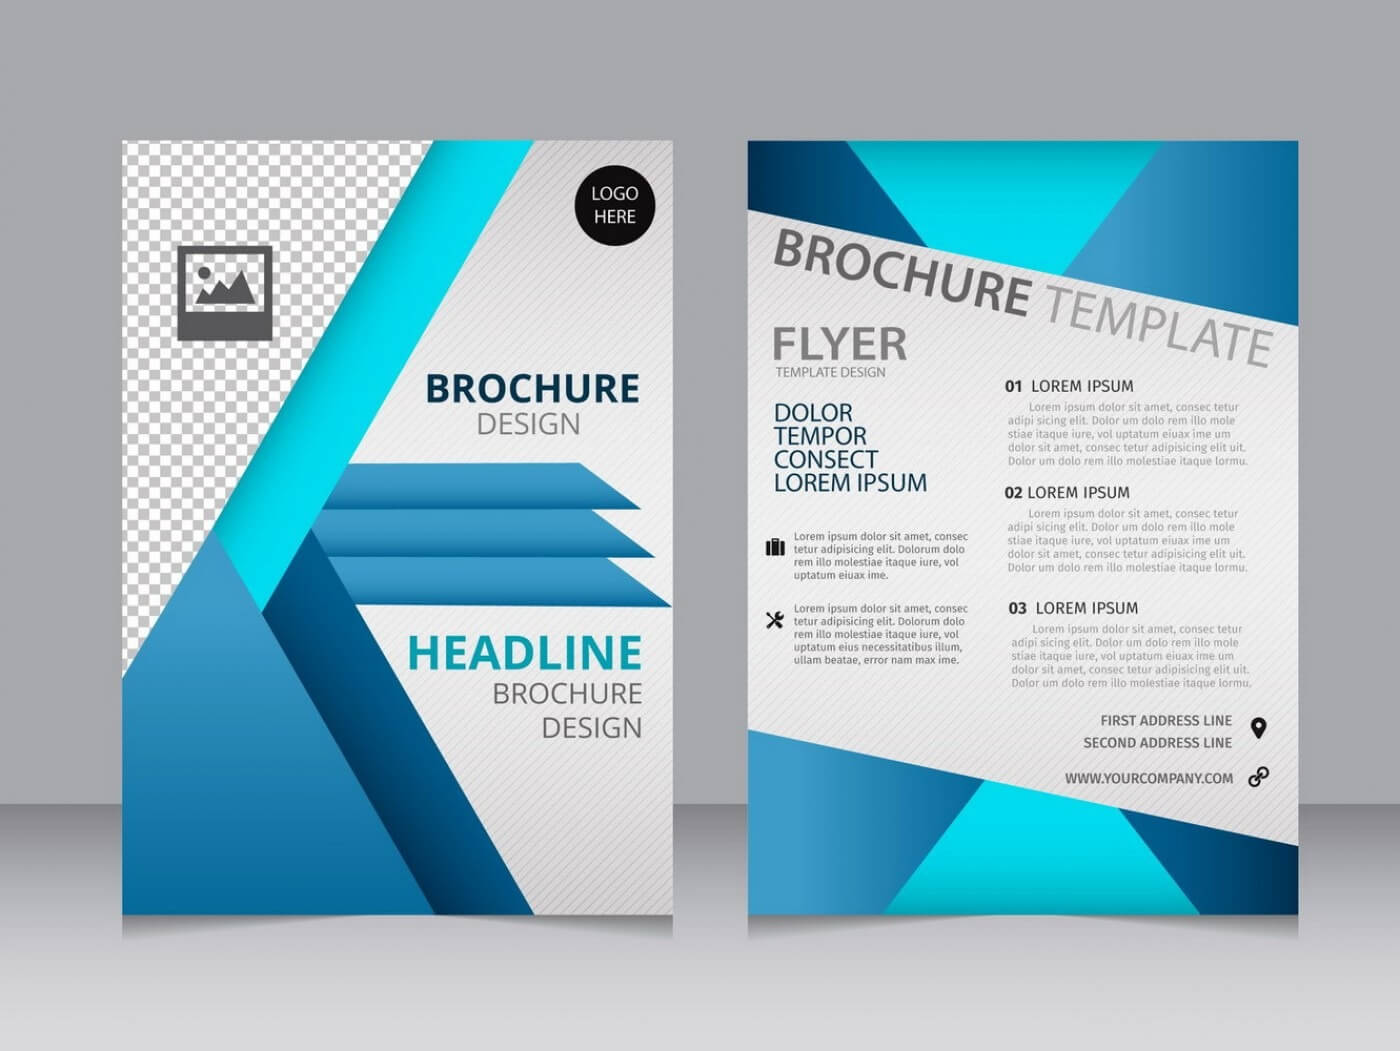 007 Blank Brochure Templates Free Download Word Template Inside Illustrator Brochure Templates Free Download